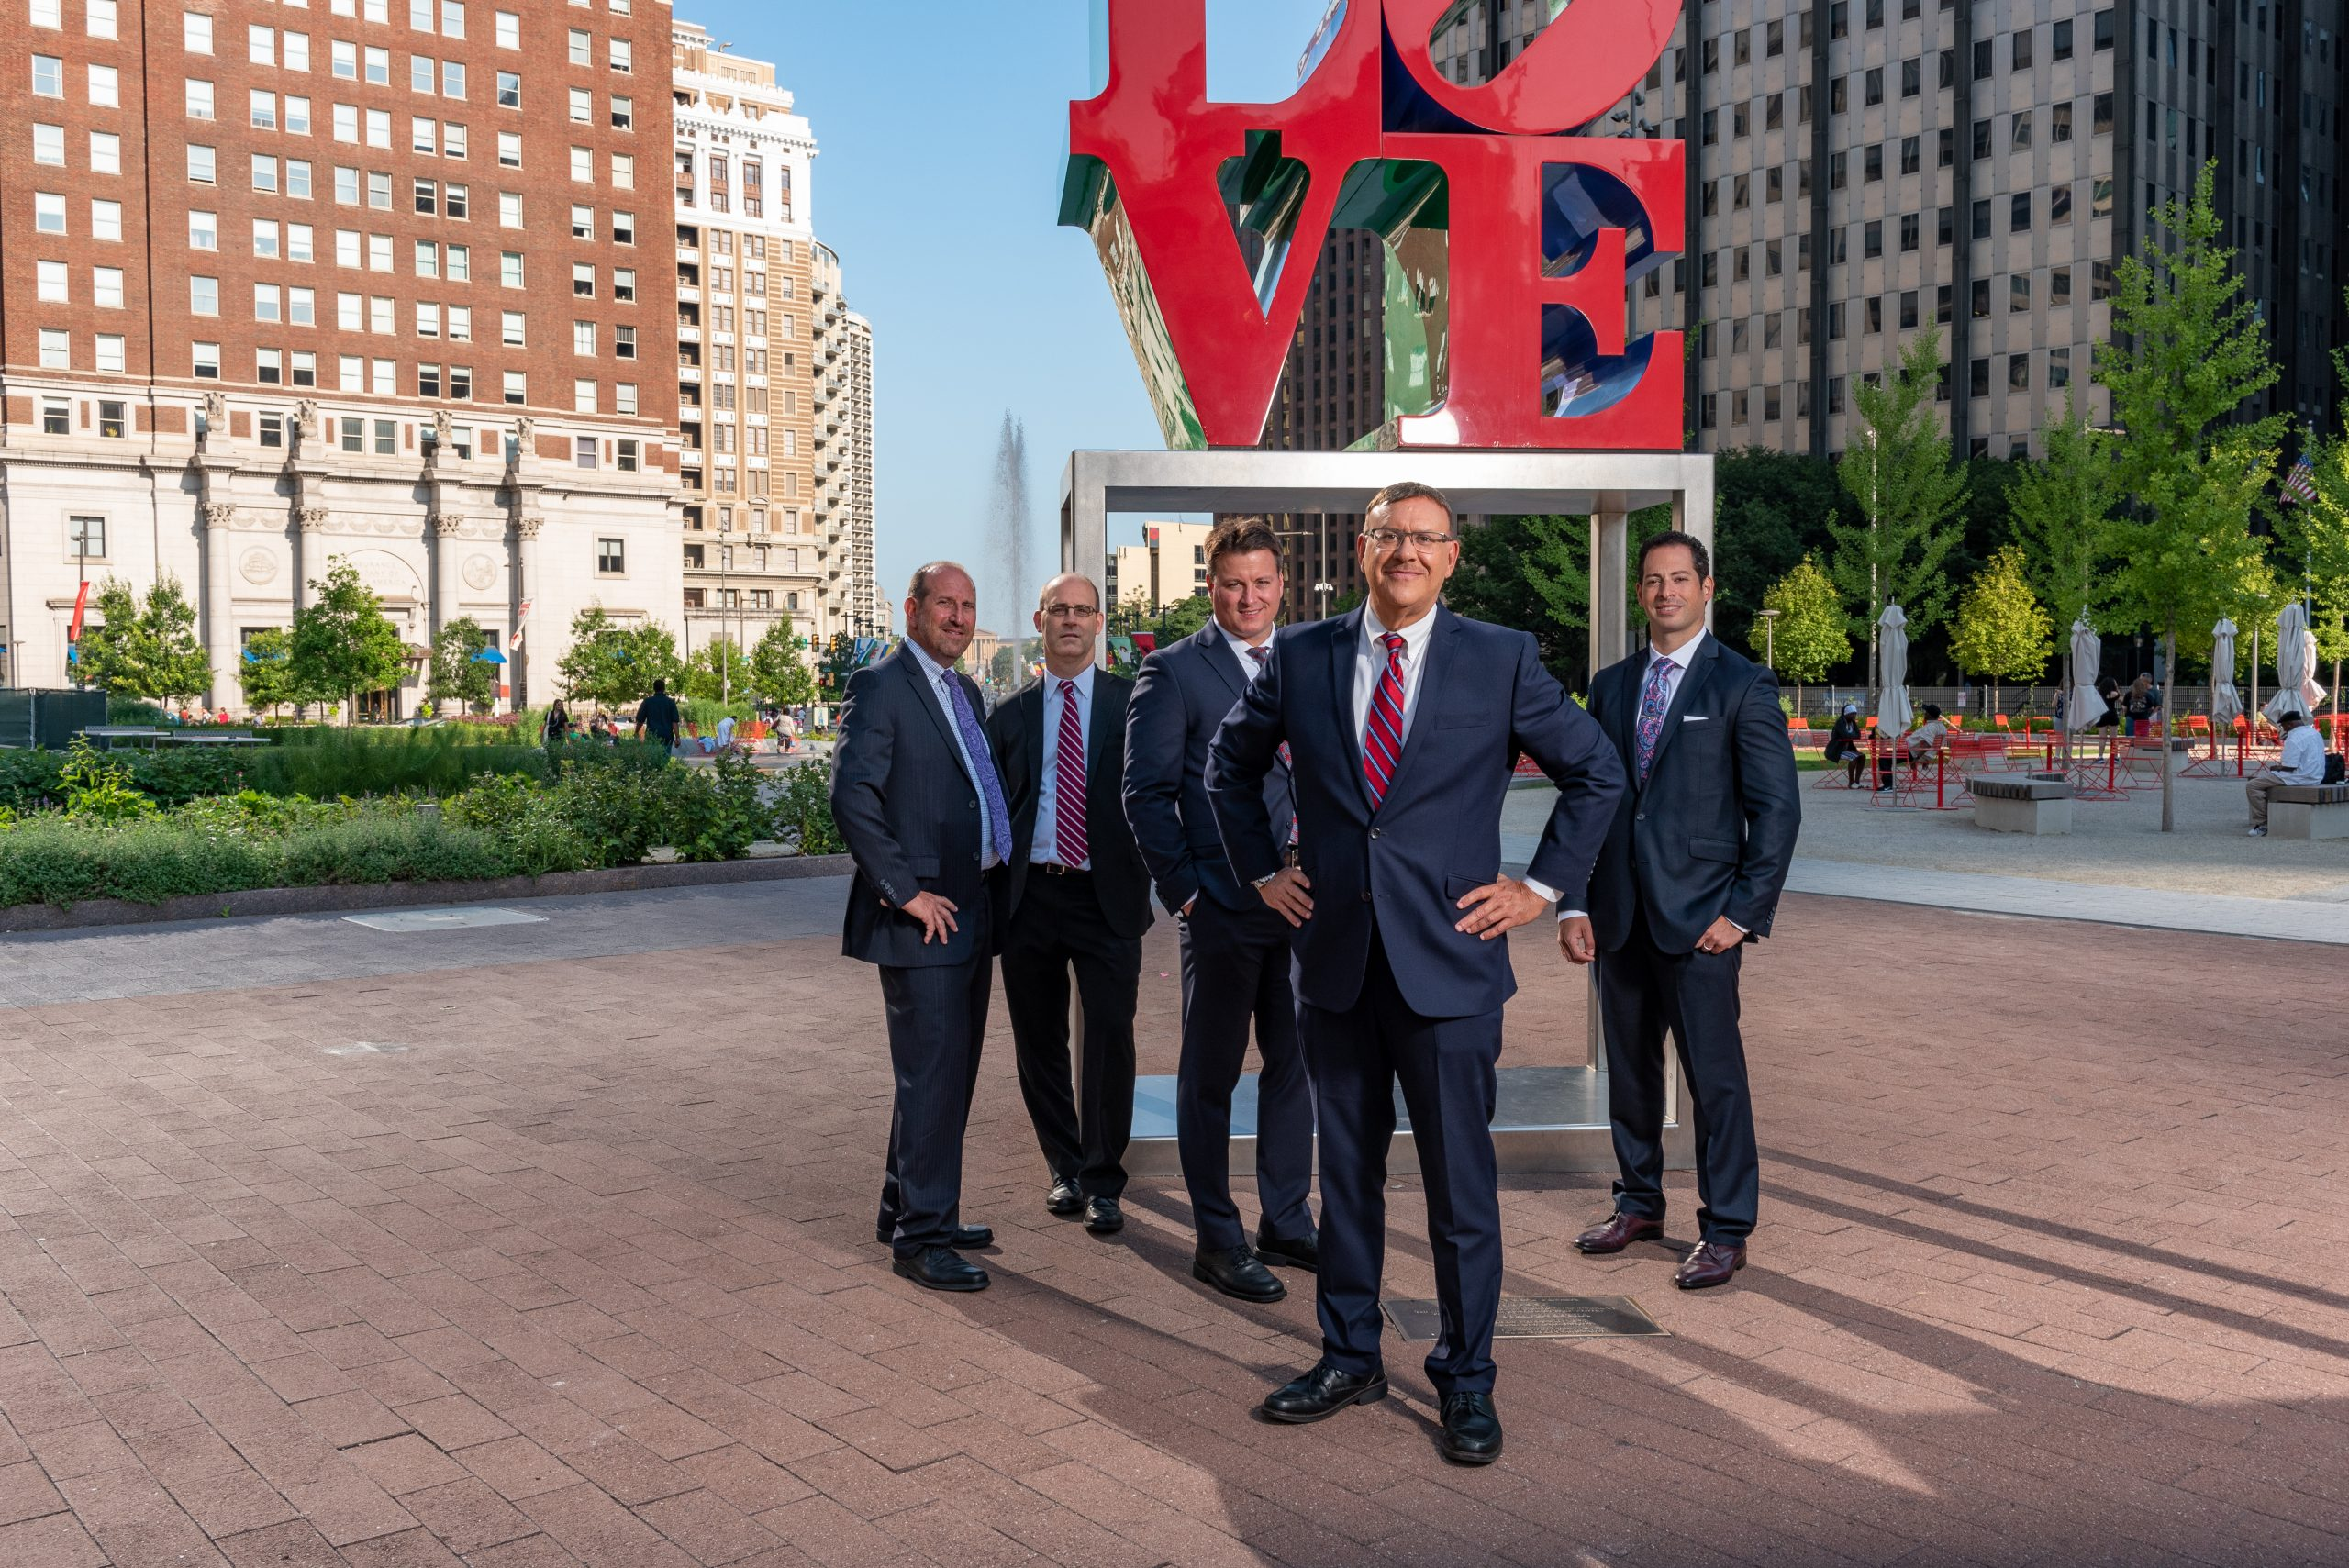 Spear Greenfield Personal Injury Attorneys legal team in front of Philadelphia Love Statue